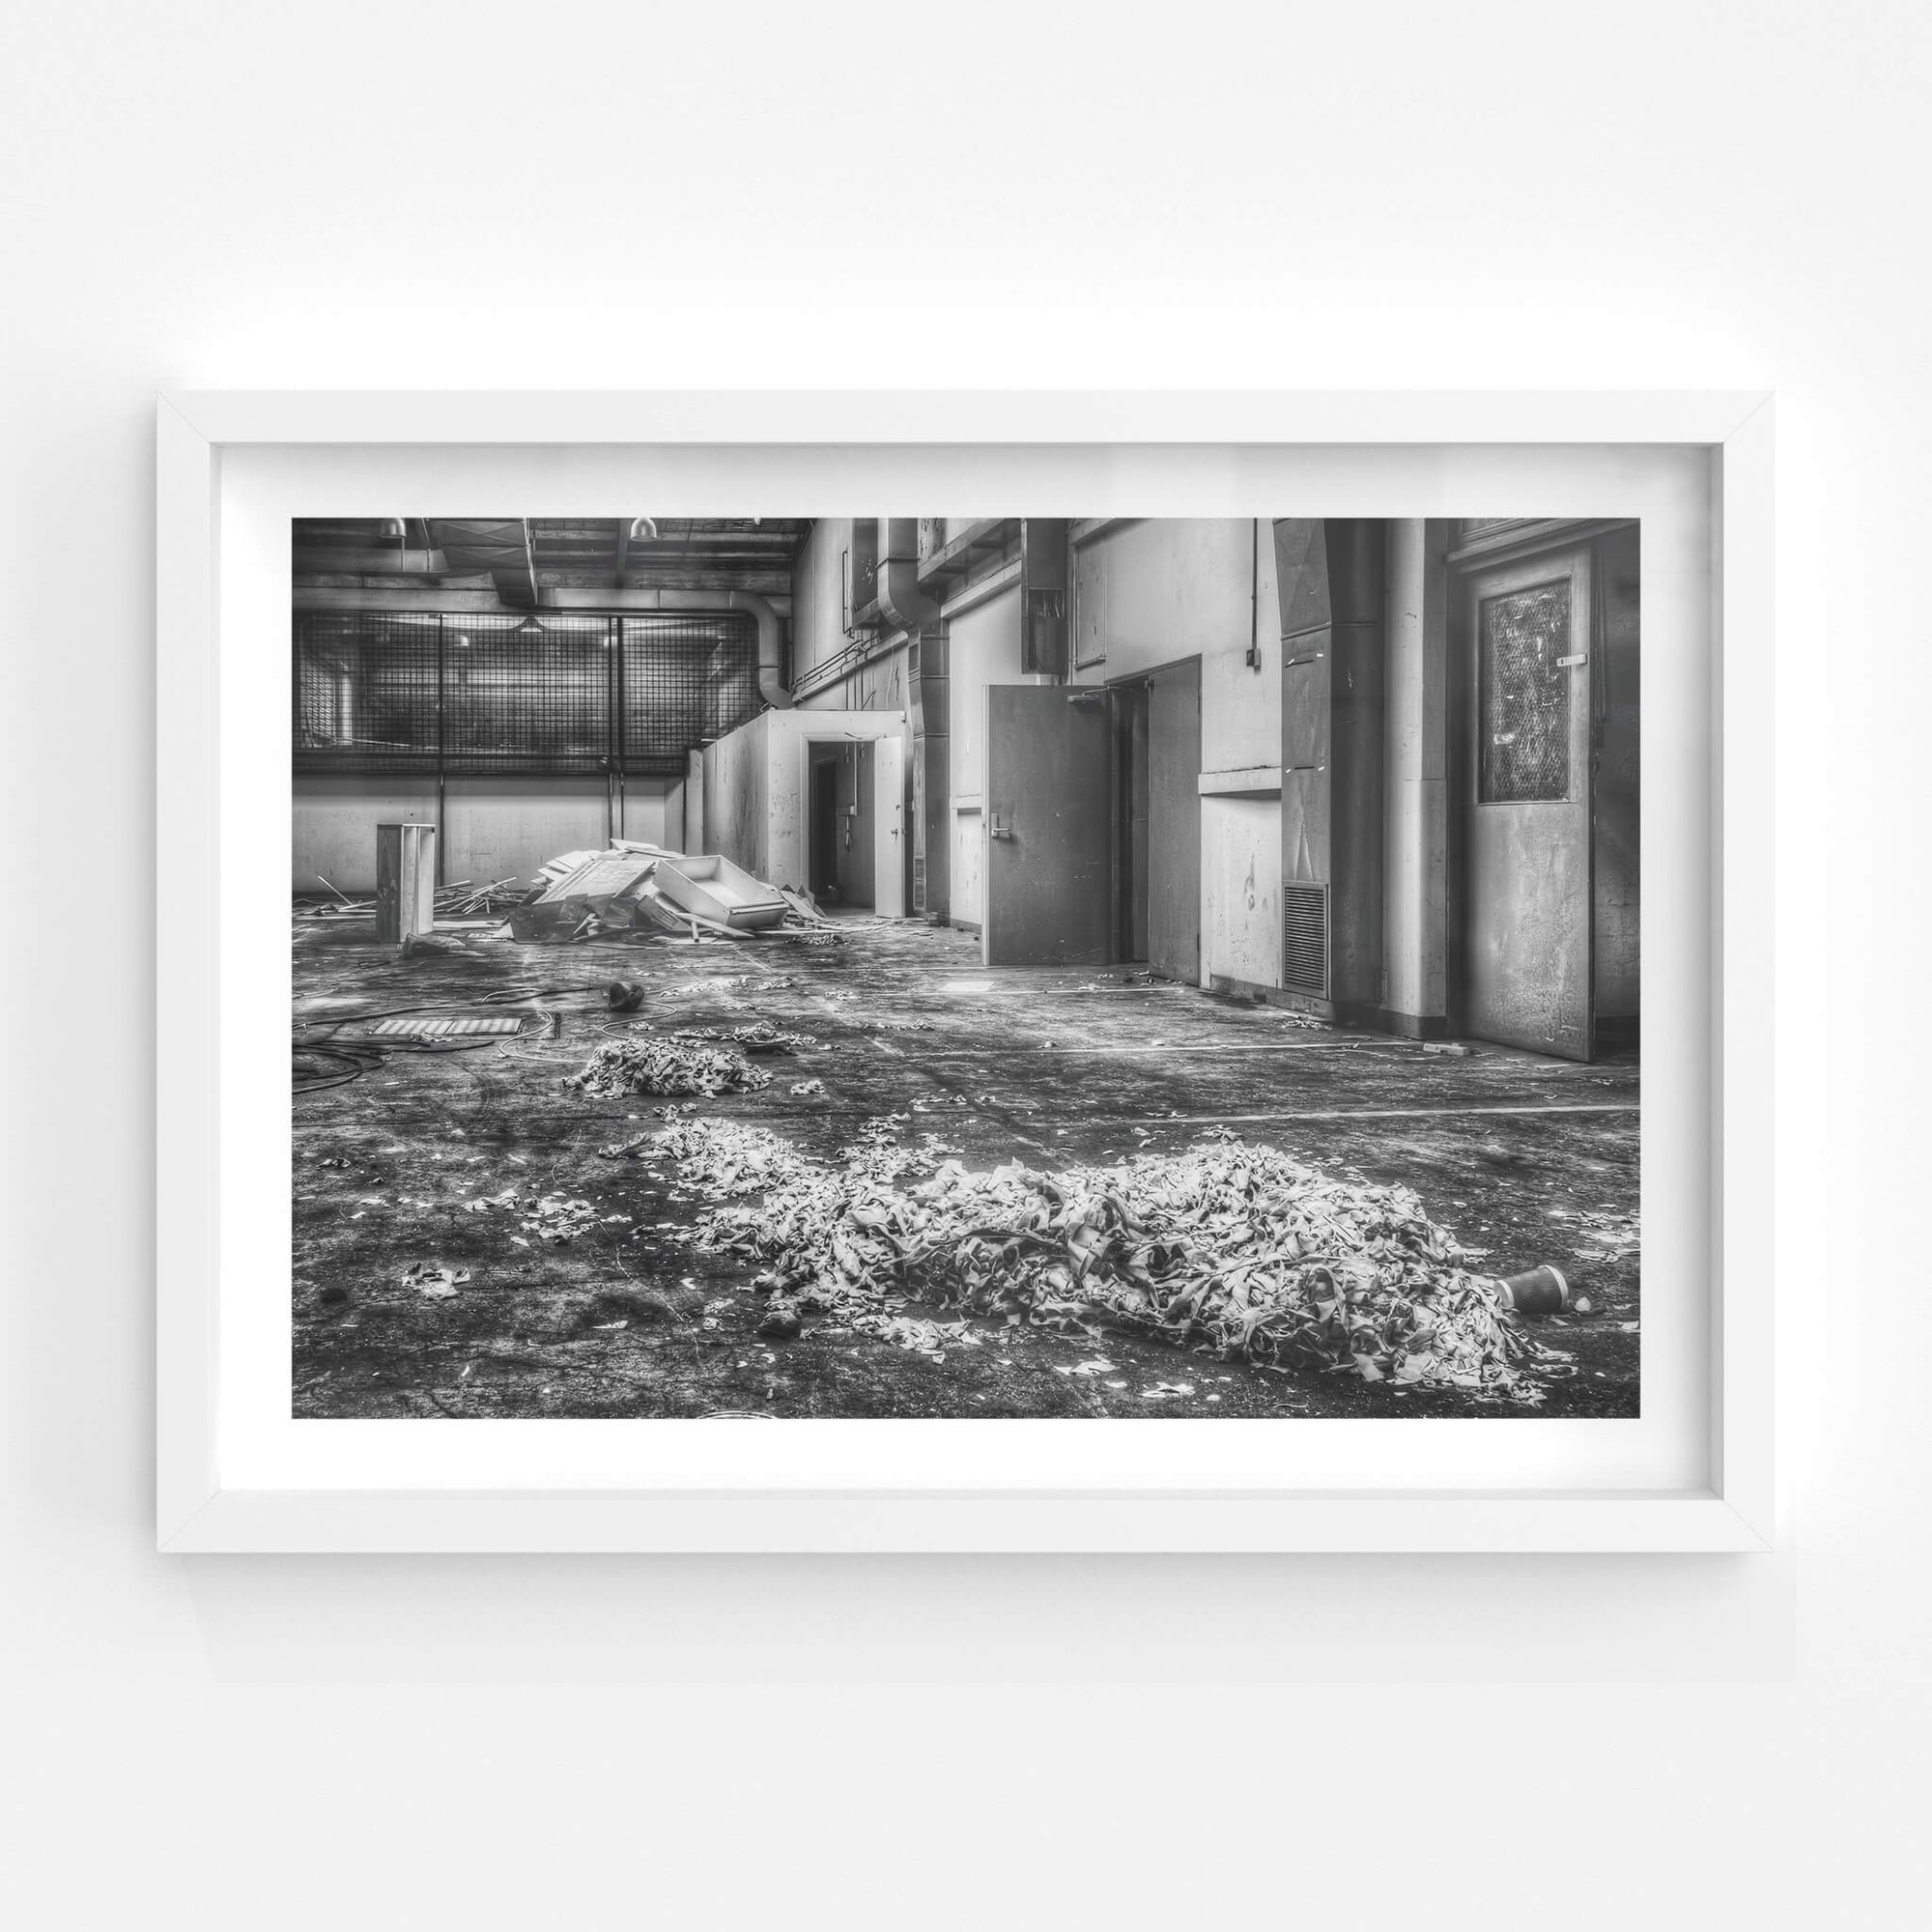 Canteen | ATL Building Fine Art Print - Lost Collective Shop